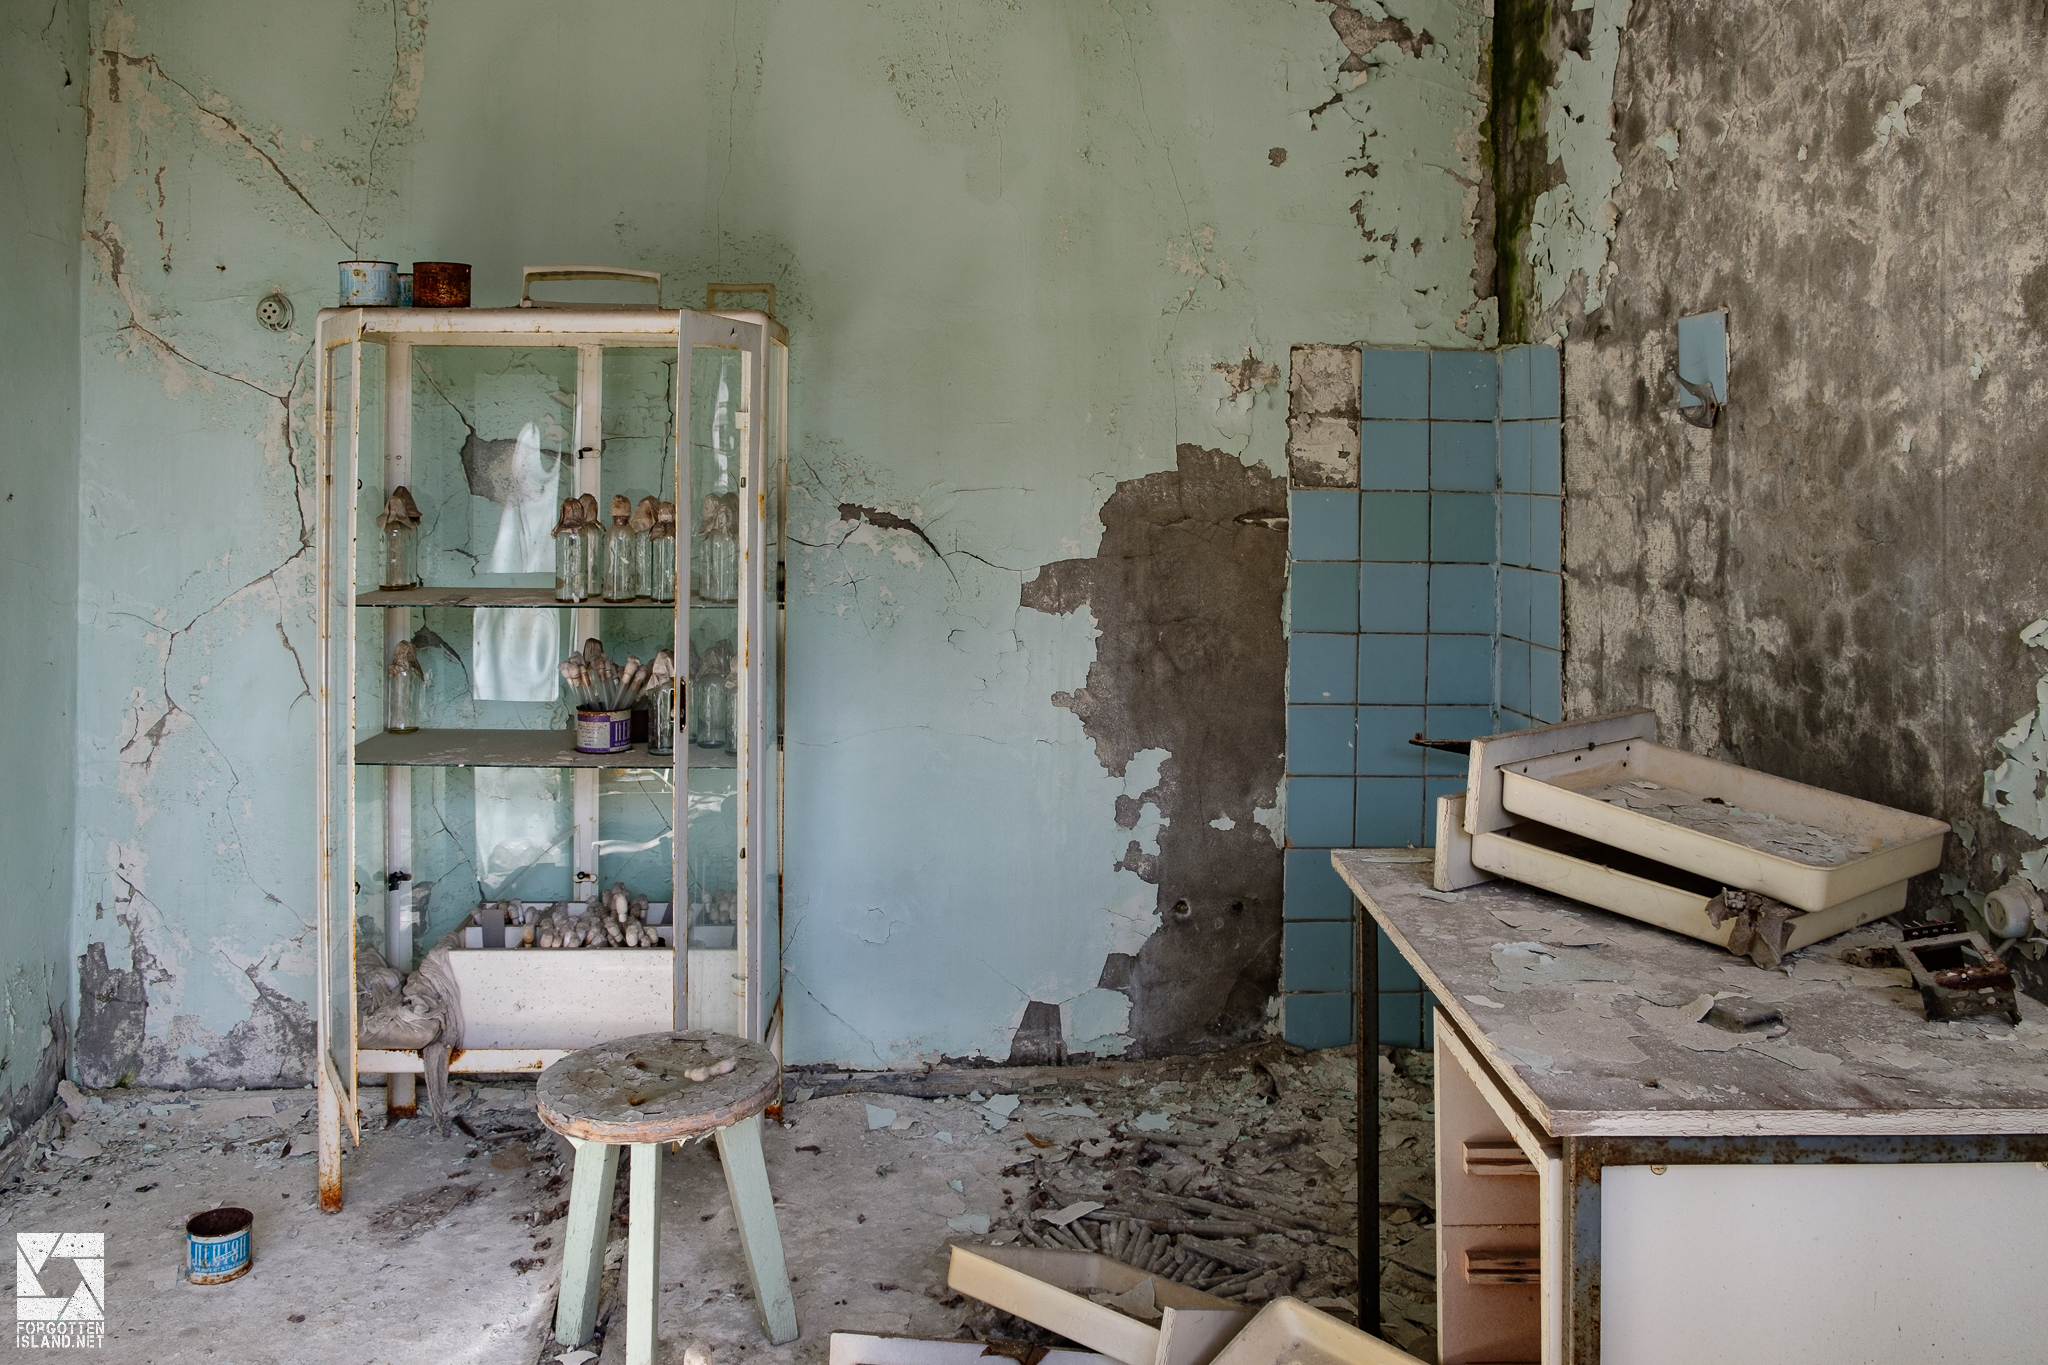 Sanitary and Epidemic Station in Pripyat